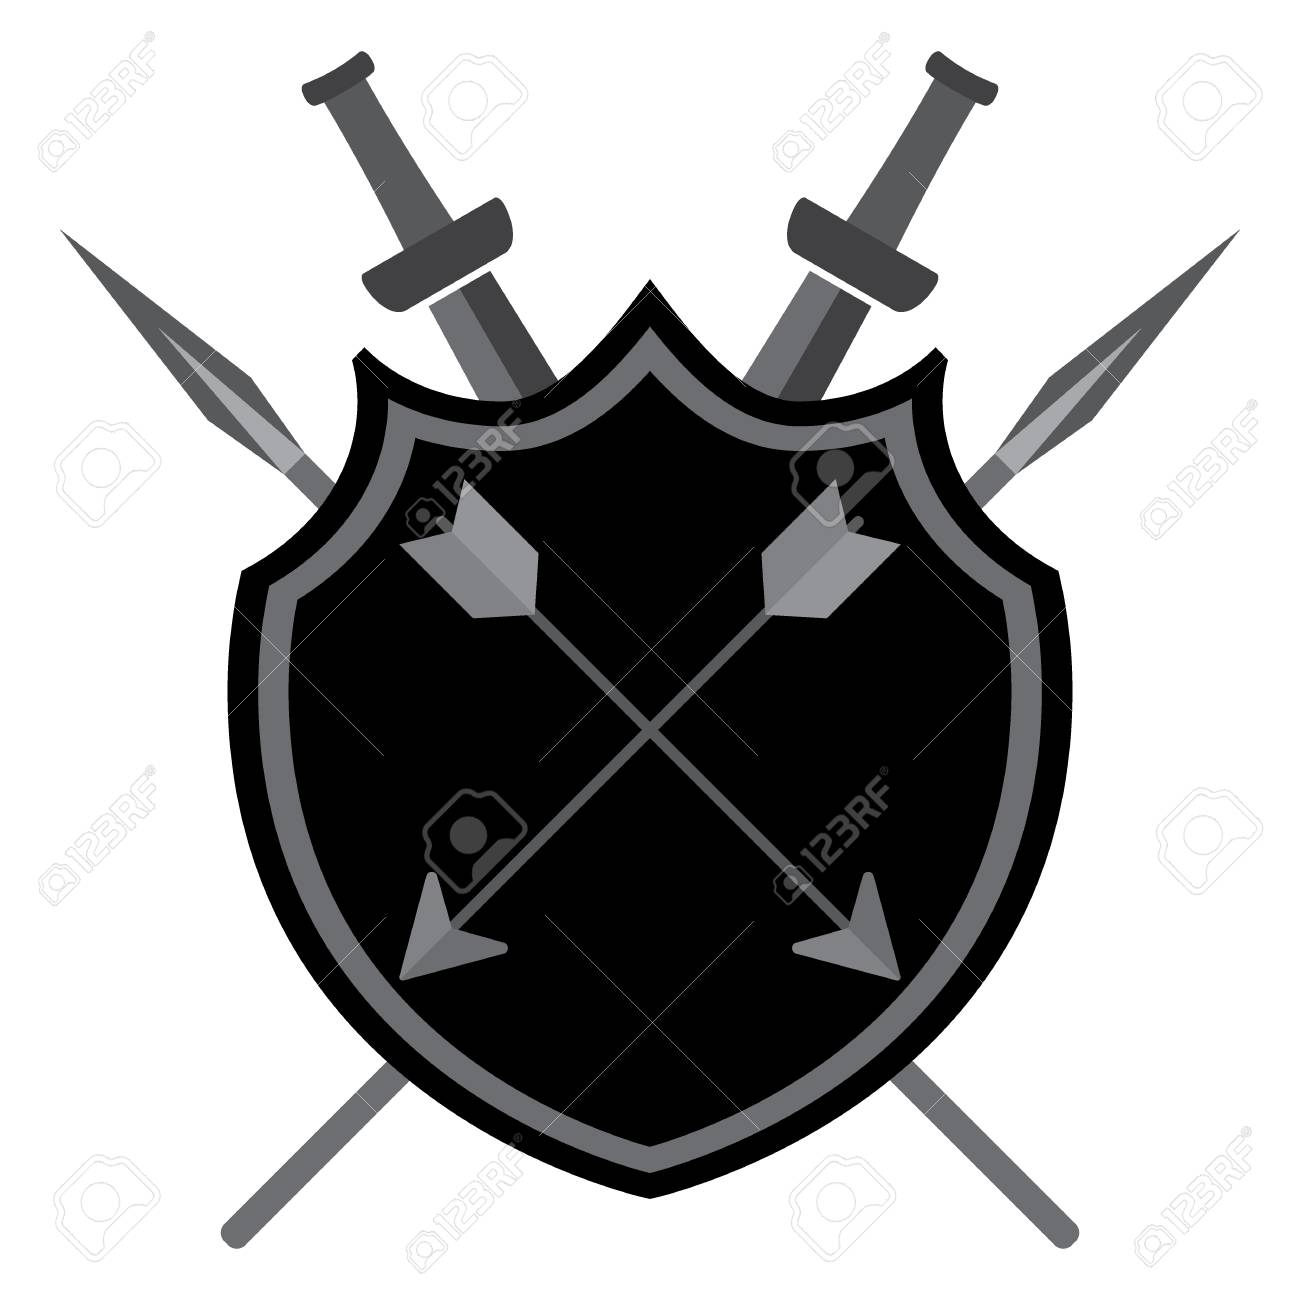 Shield with arrows swords and spears on a white background